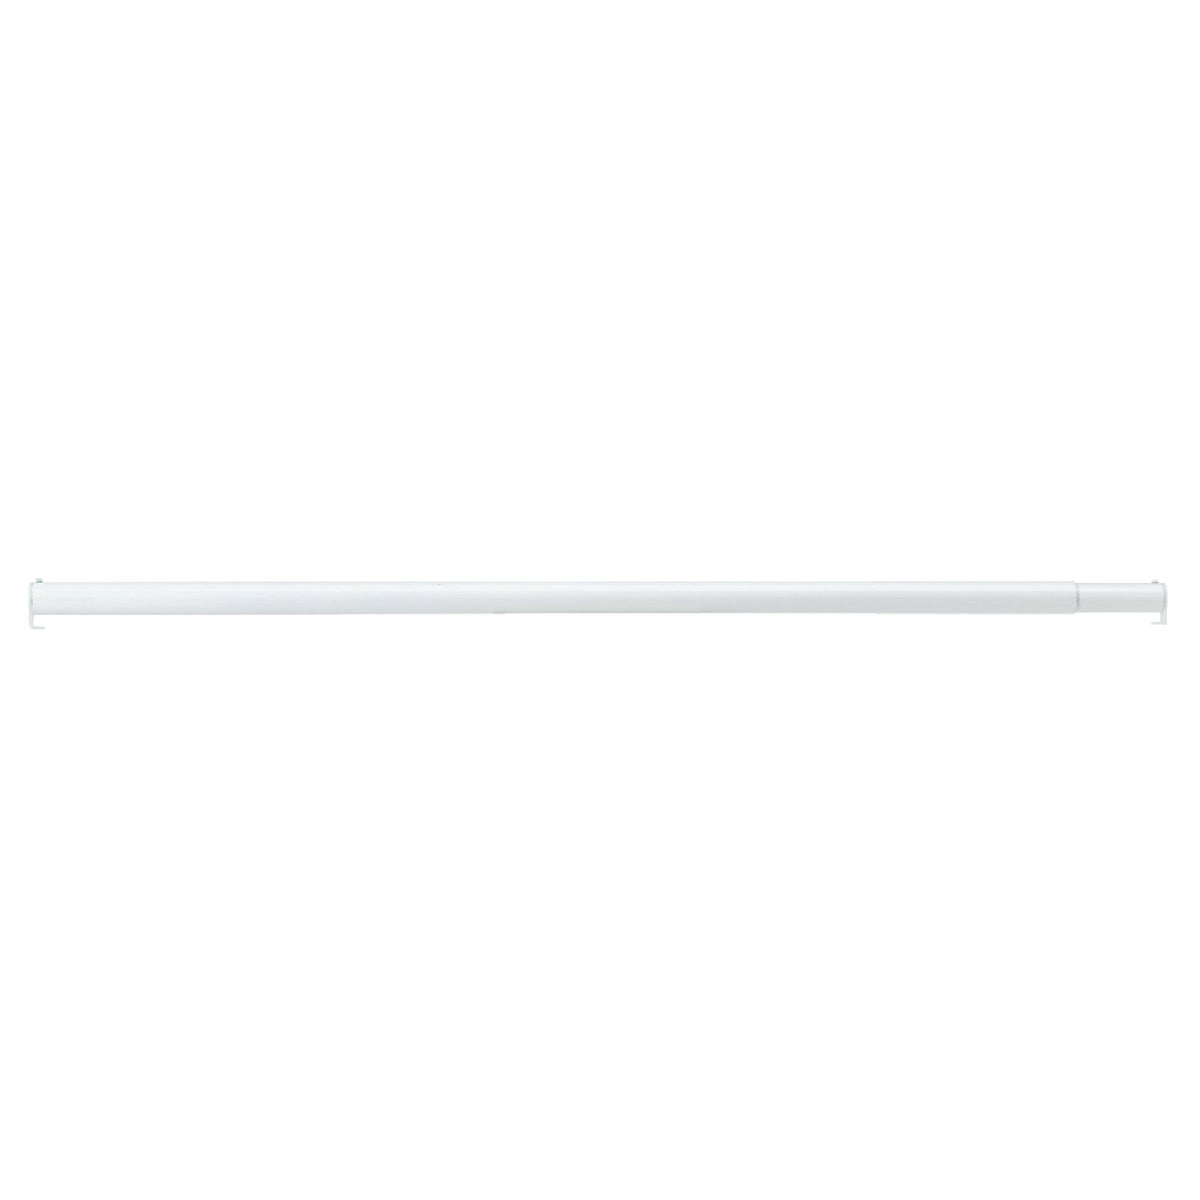 ADJUSTABLE CLOSET ROD - RP-0021-48/72 by Knape & Vogt Mfg Co